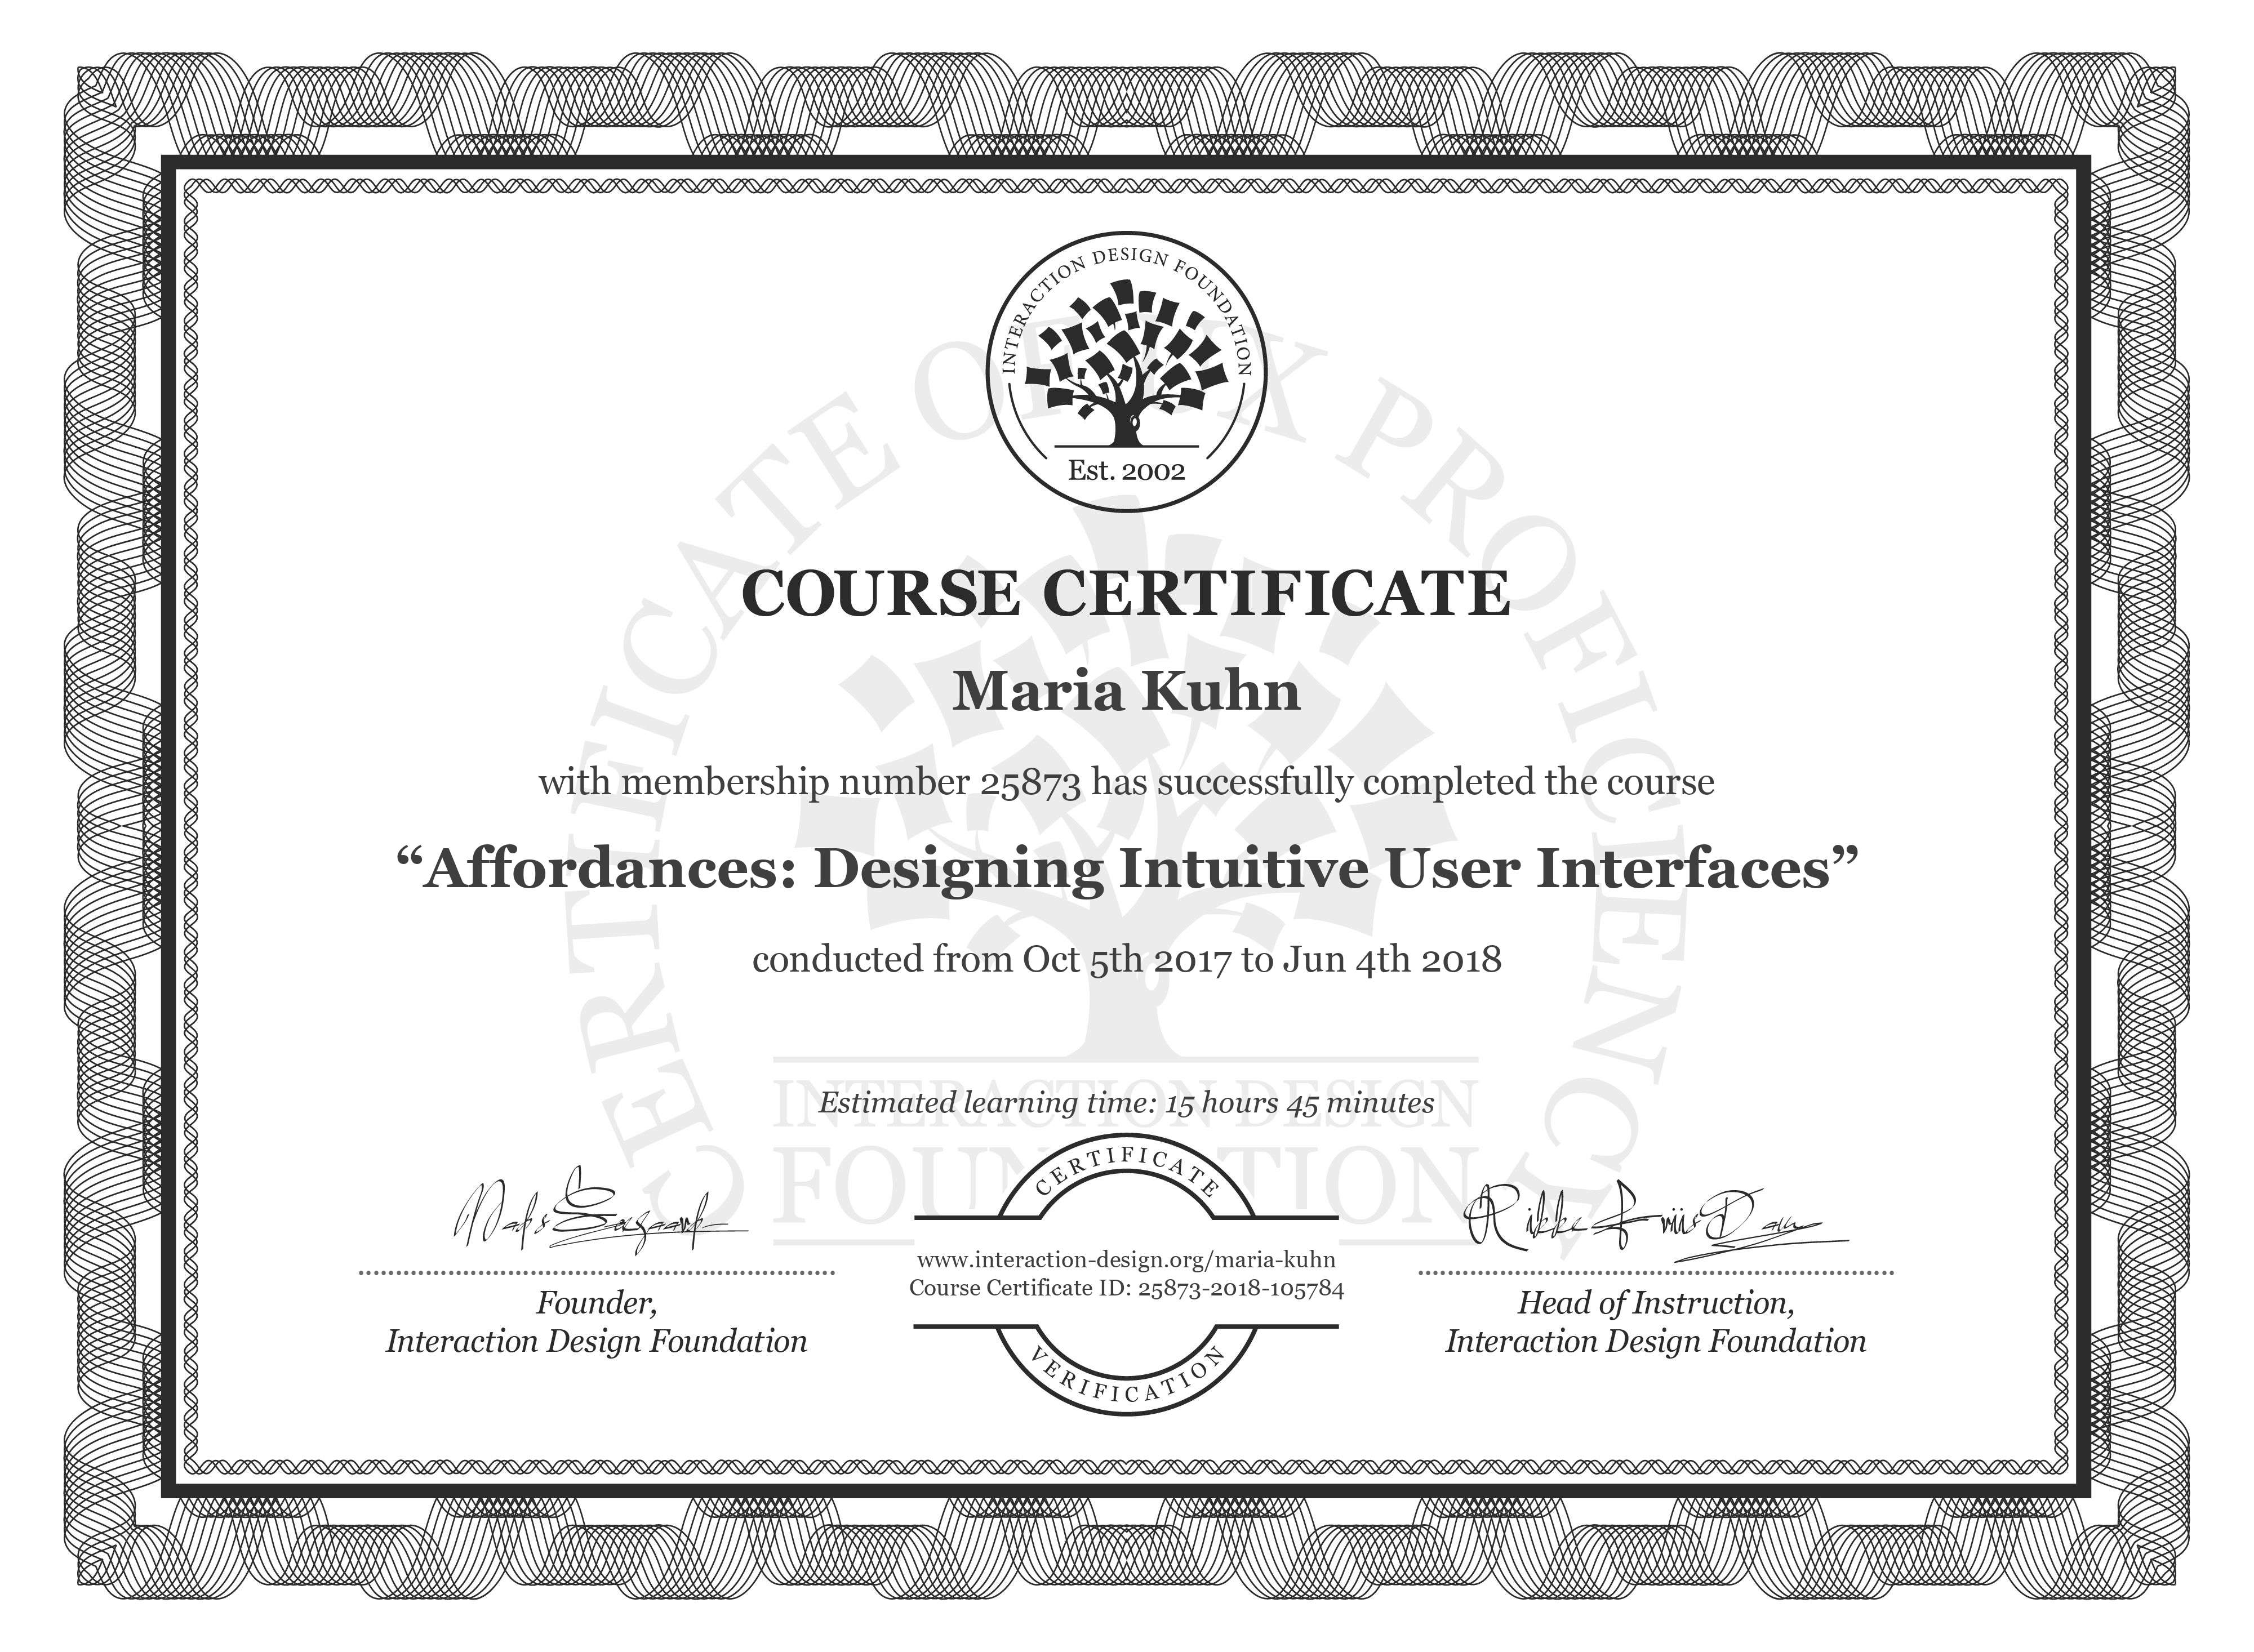 Maria Kuhn's Course Certificate: Affordances: Designing Intuitive User Interfaces